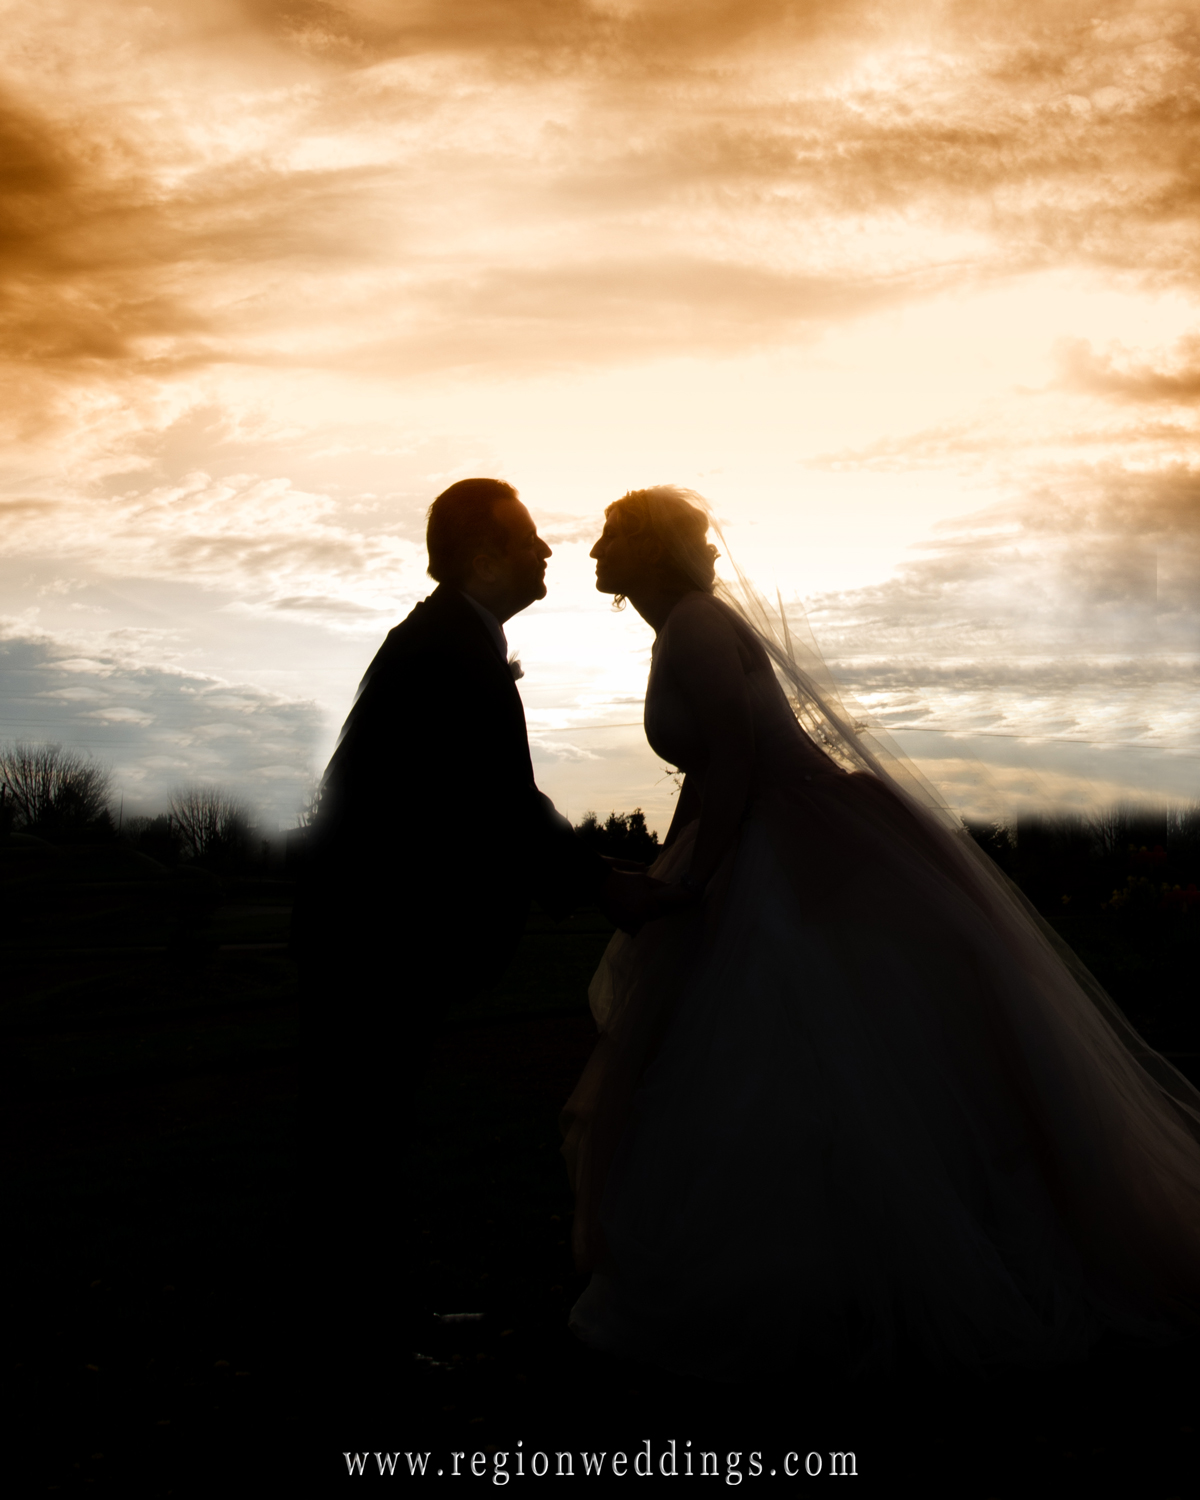 Silhouette of the bride and groom about to kiss on a warm Spring night with the sun setting in the background.